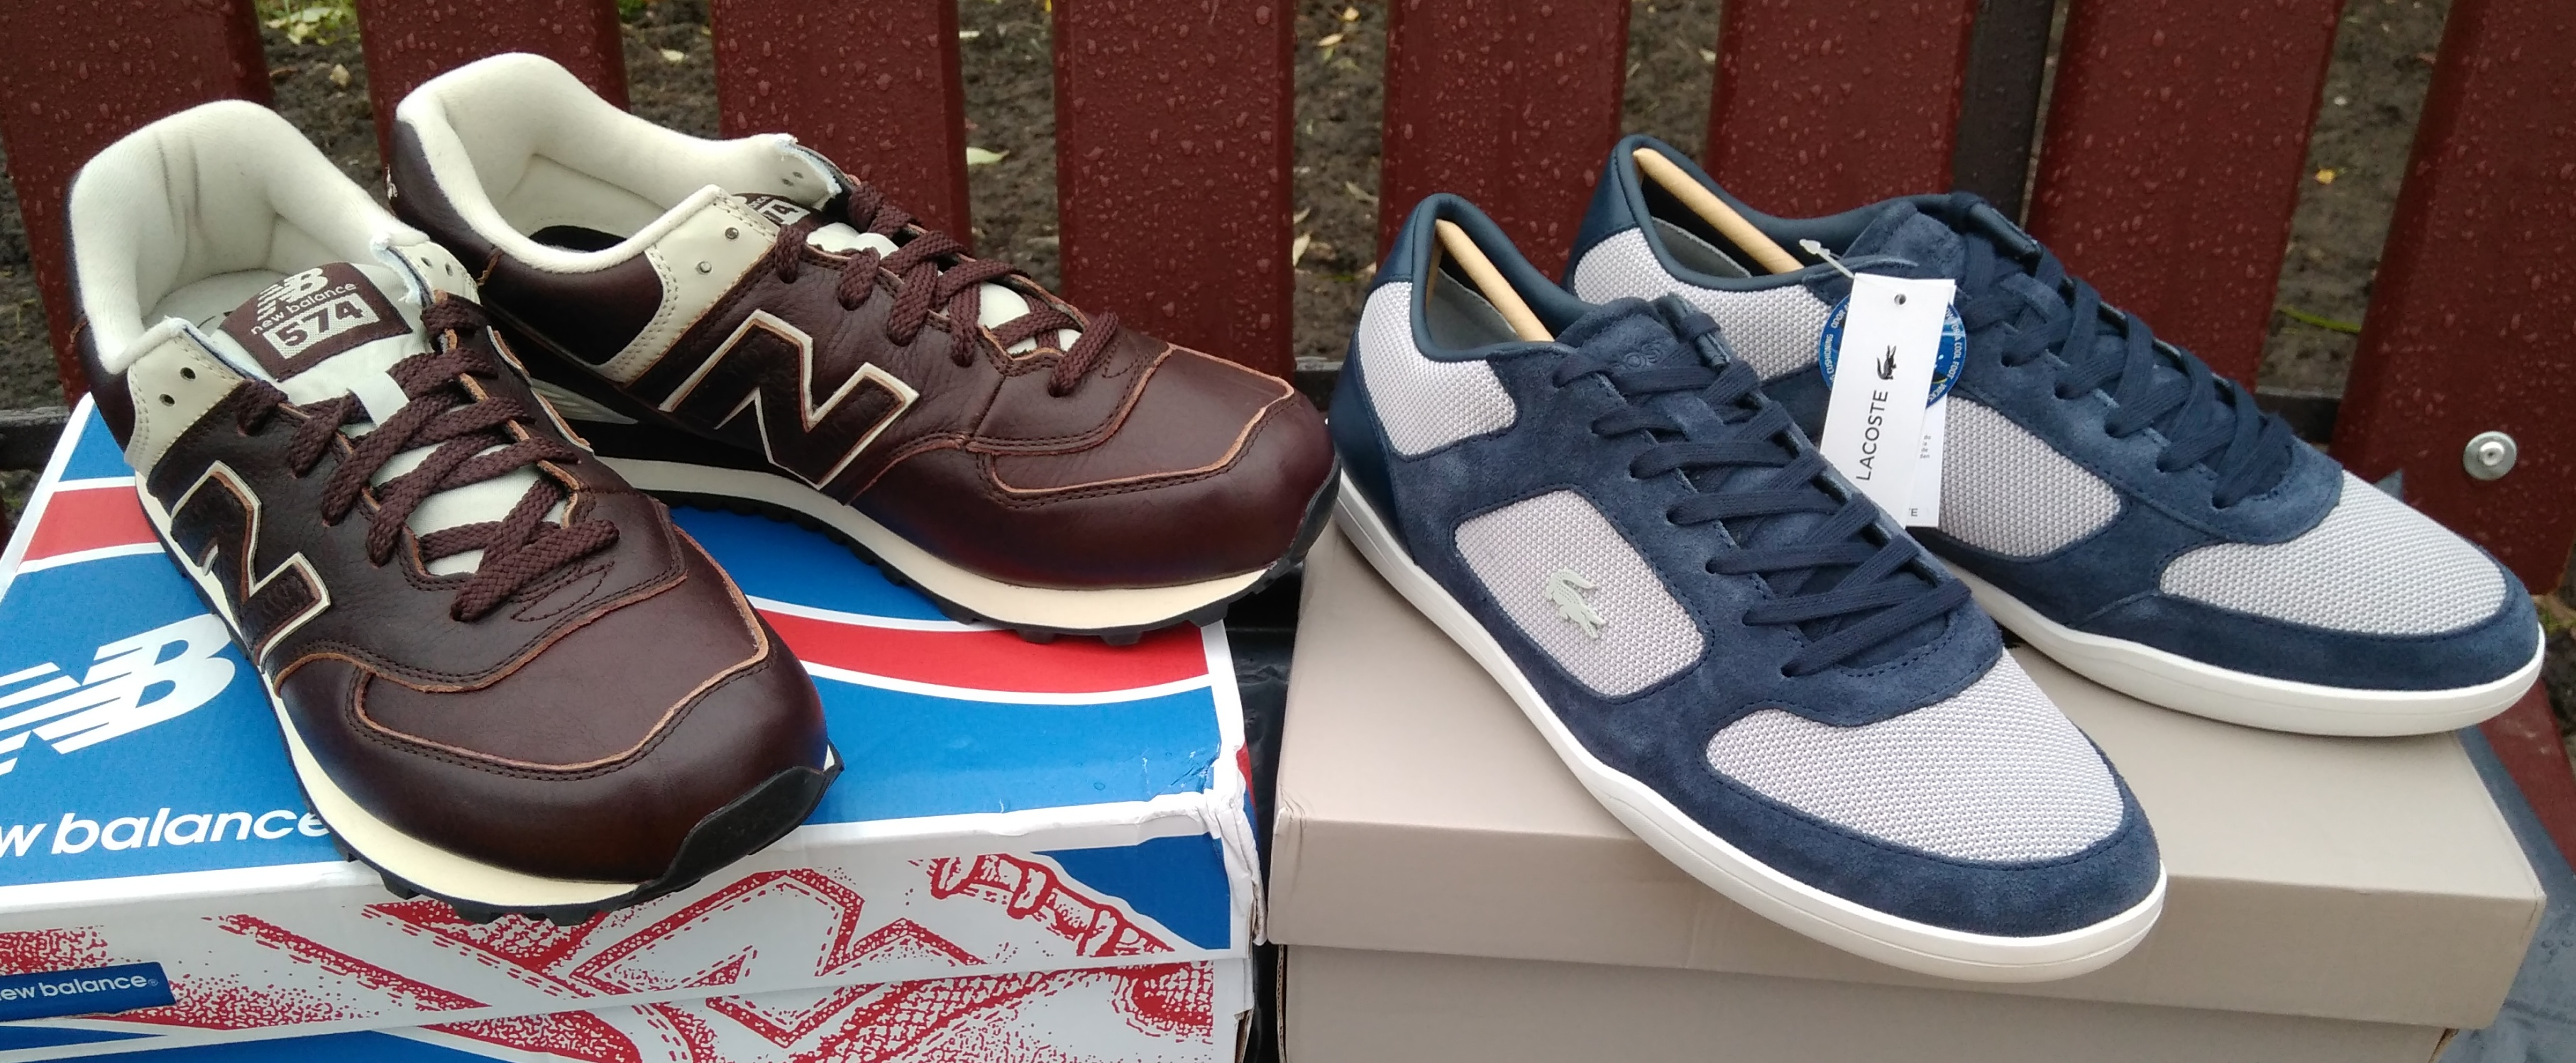 New Balance 574 Lux Leather и Lacoste Court-Minimal 217 1 CAM